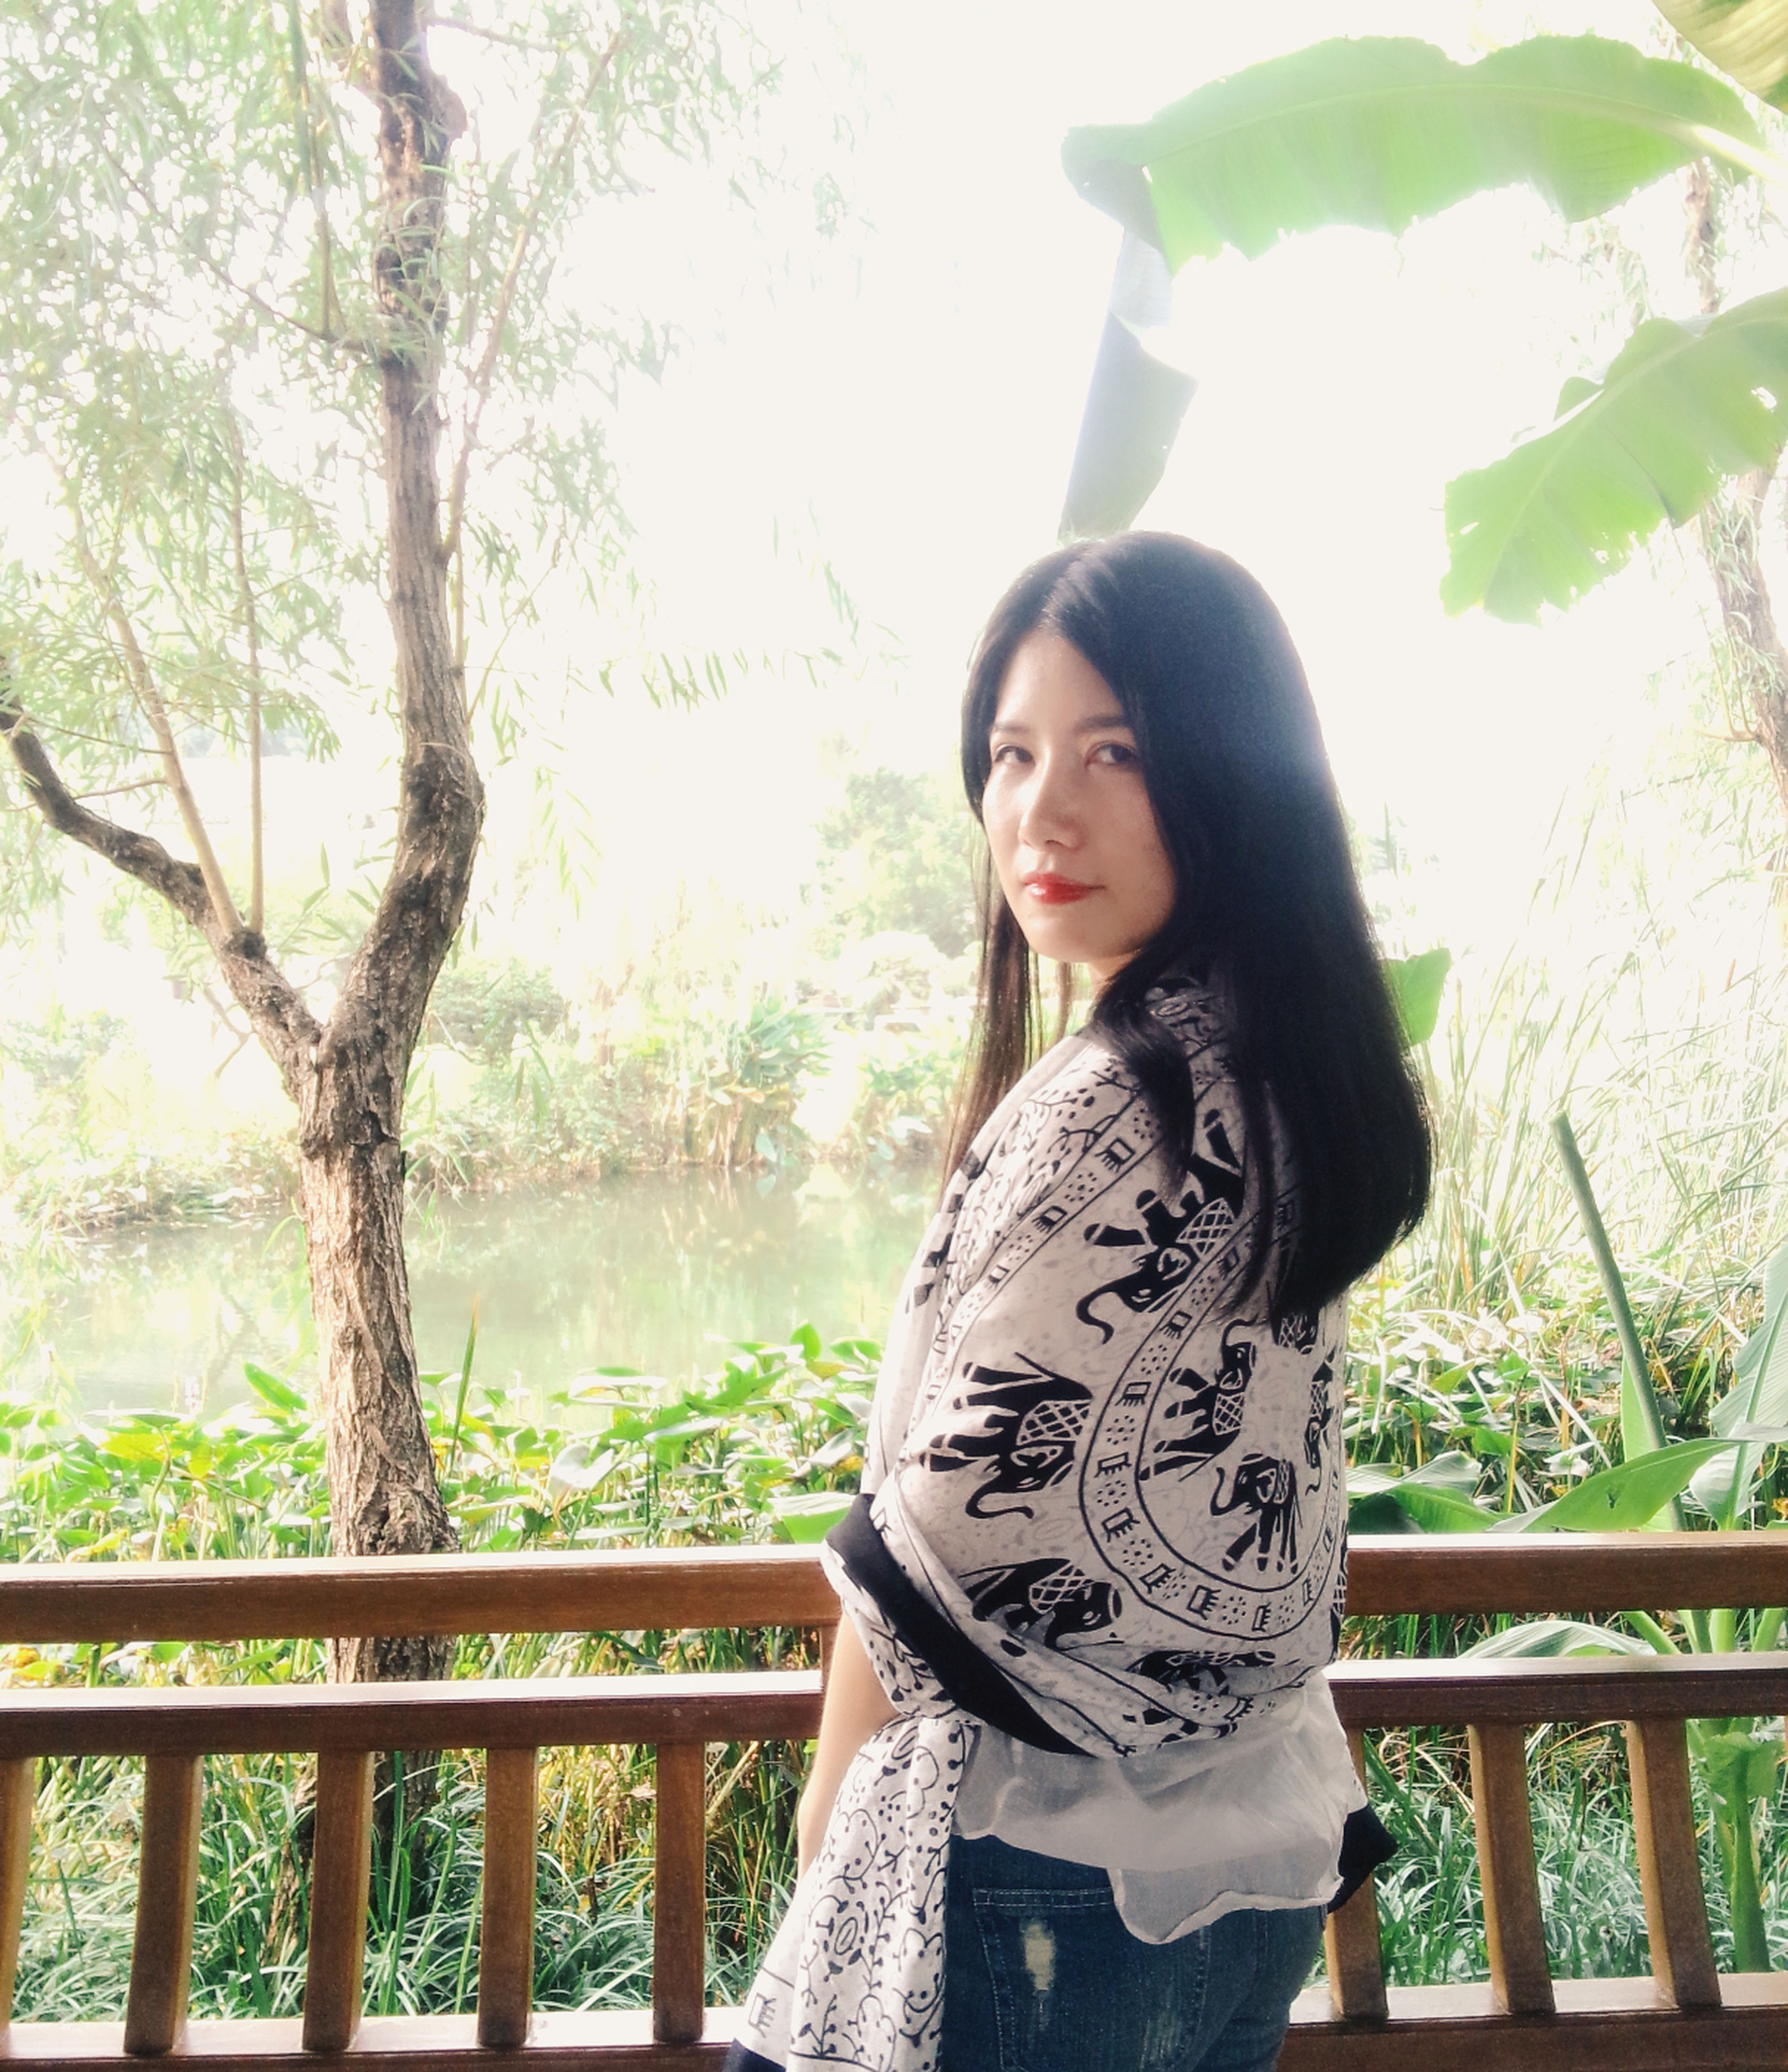 young adult, tree, lifestyles, casual clothing, standing, young women, person, leisure activity, waist up, railing, three quarter length, portrait, long hair, front view, looking at camera, sitting, nature